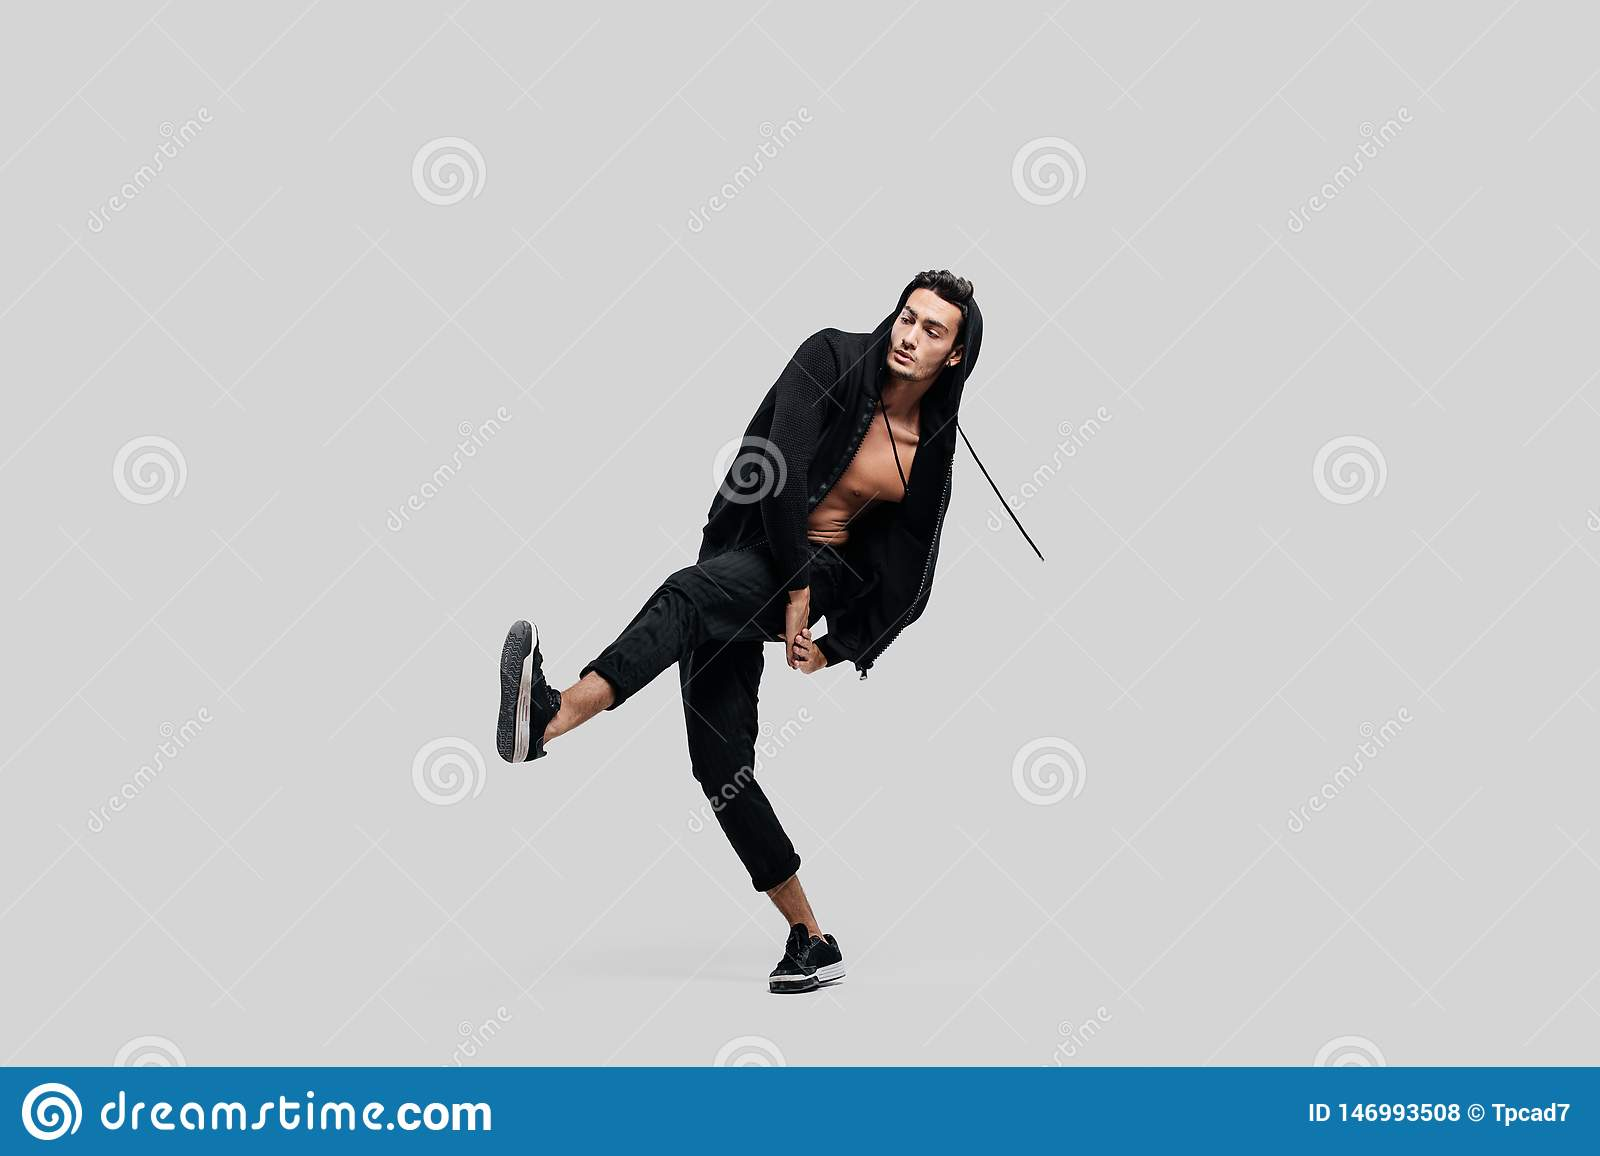 Handsome young dancer dressed in black pants, a sweatshirt on a naked torso lifts one leg up while dancing street dance